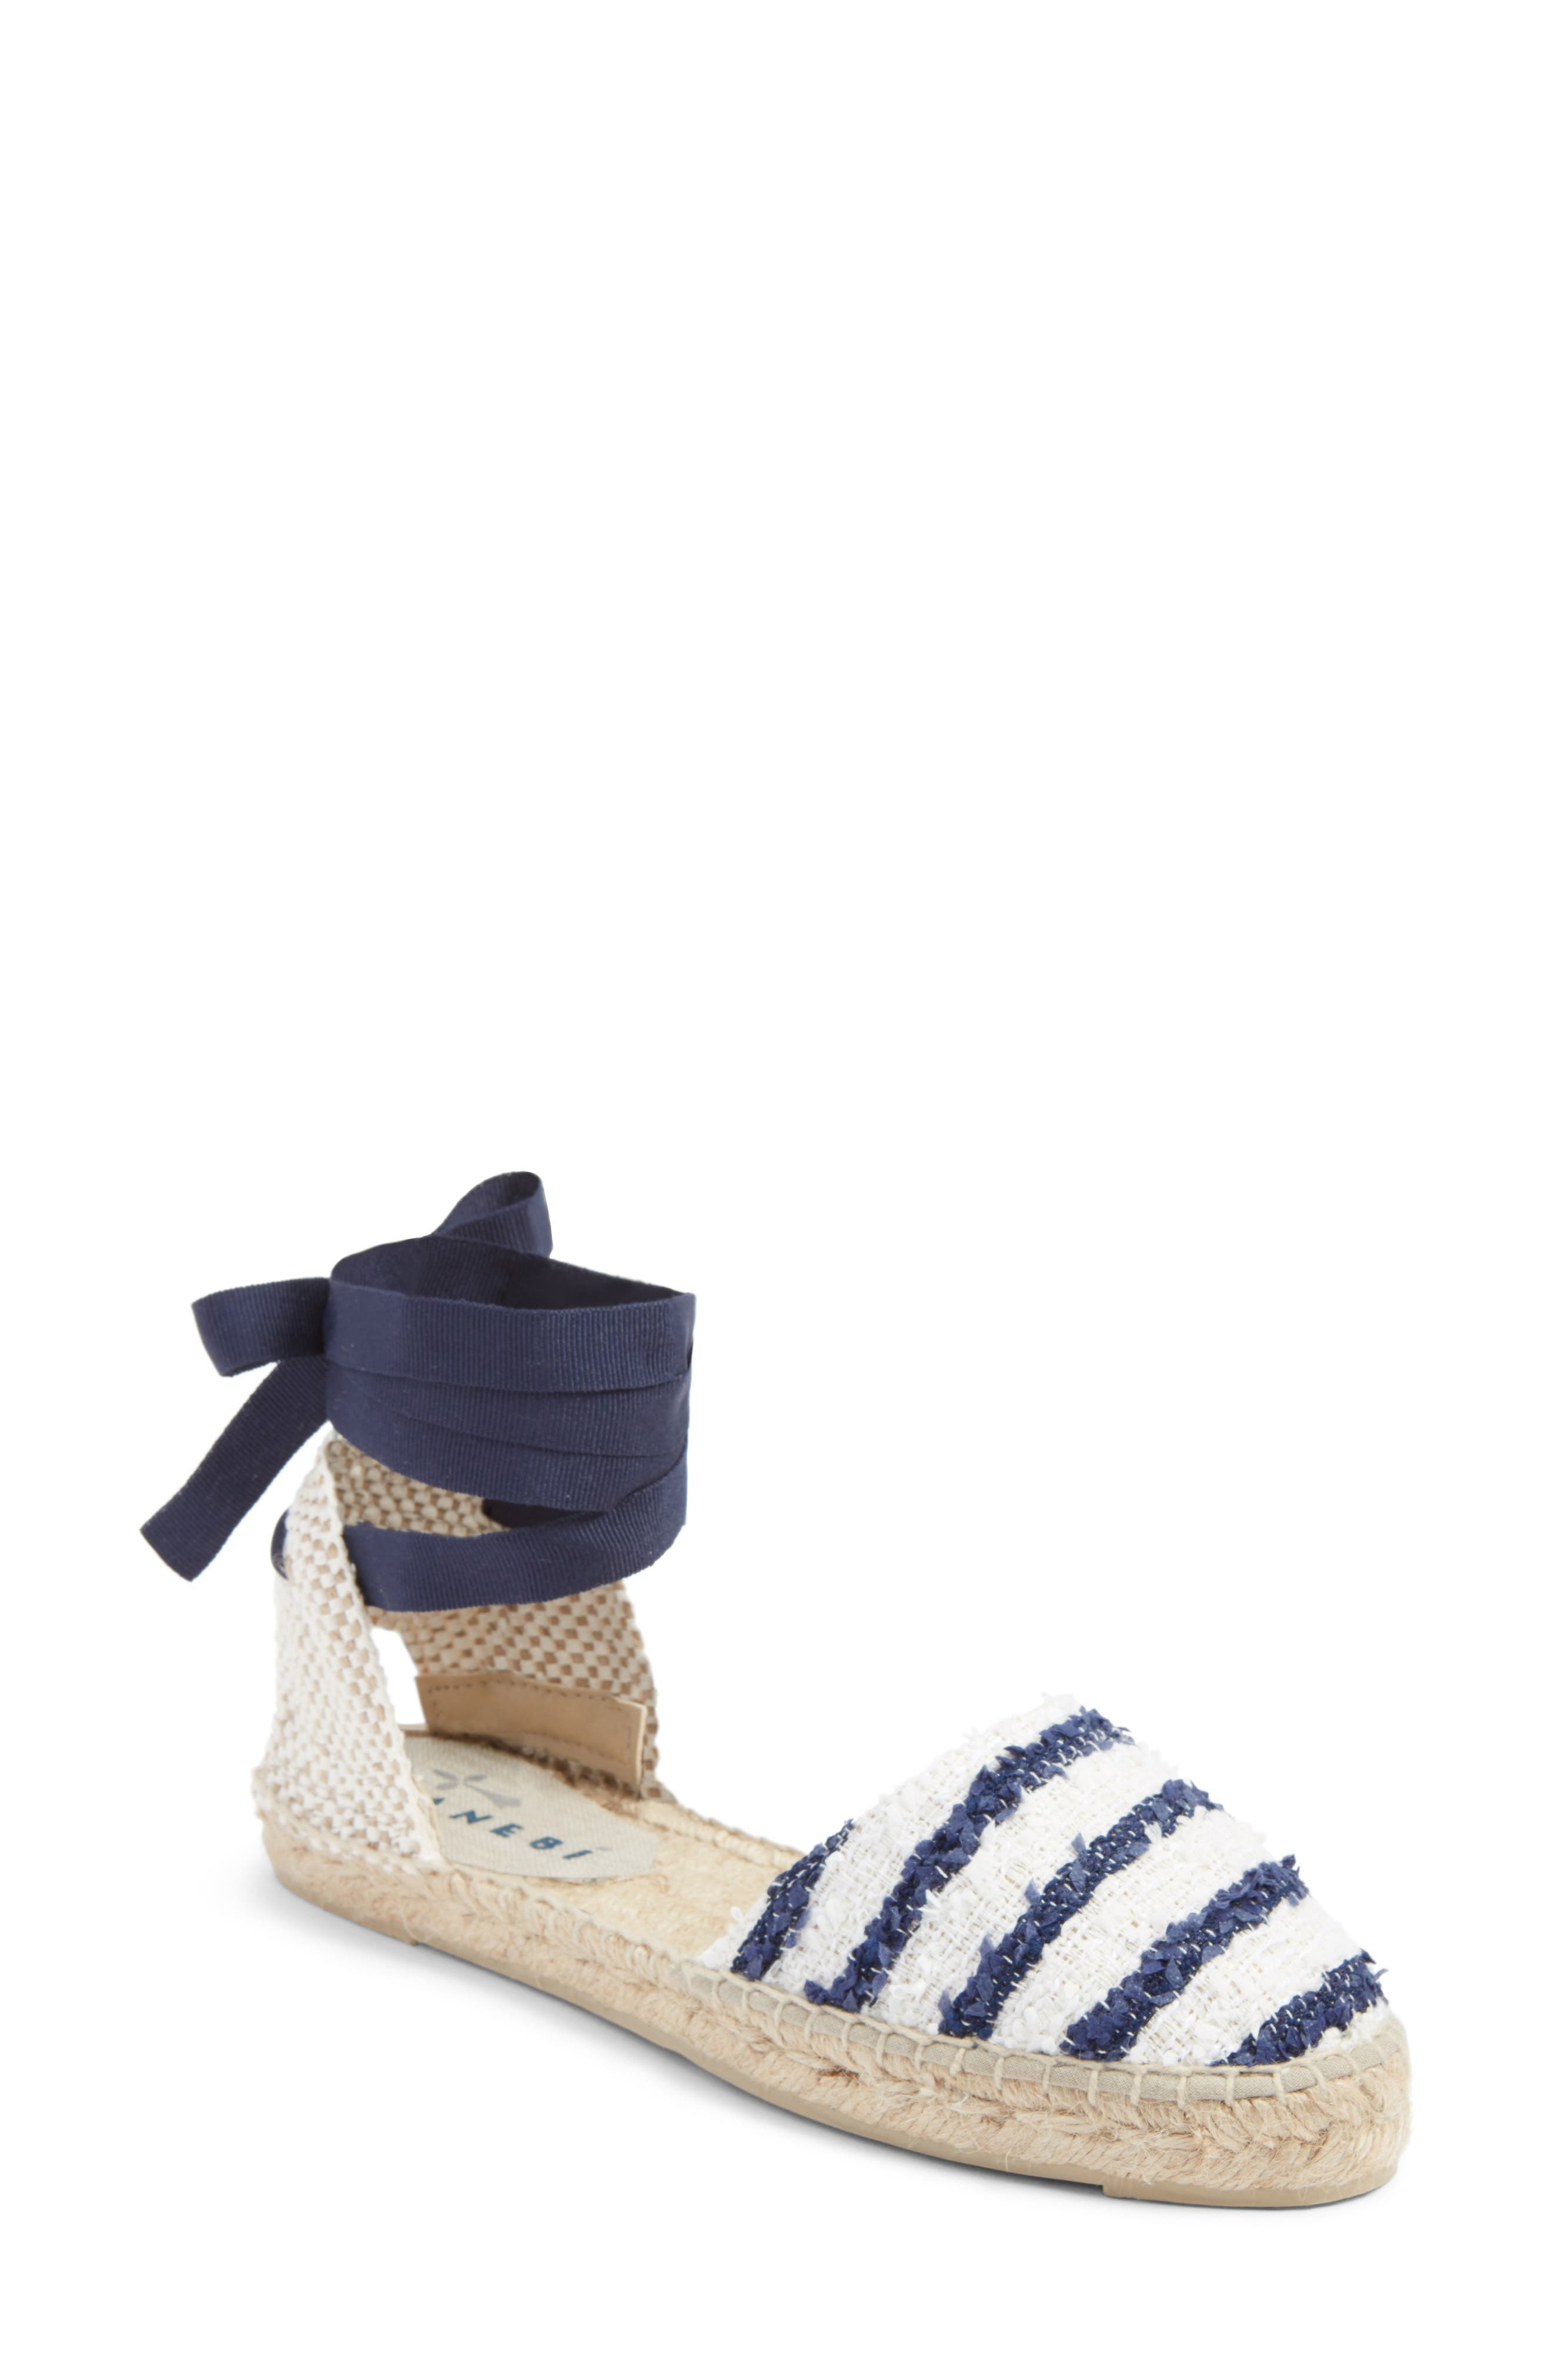 MANEBÍ Paris Lace-Up Espadrille Sandal,                             Main thumbnail 1, color,                             400